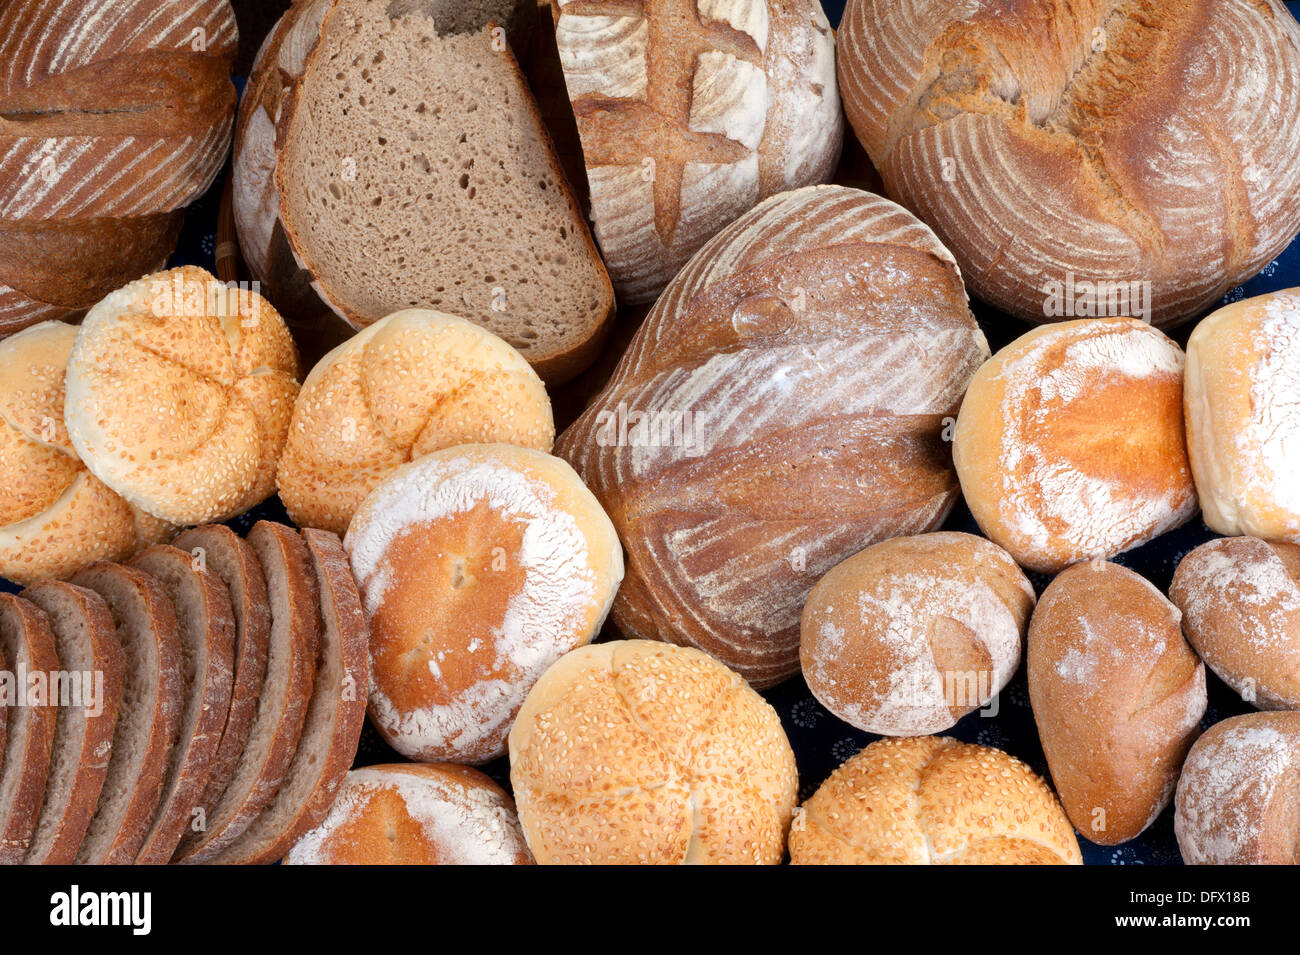 Bread, buns - bakery products - Stock Image